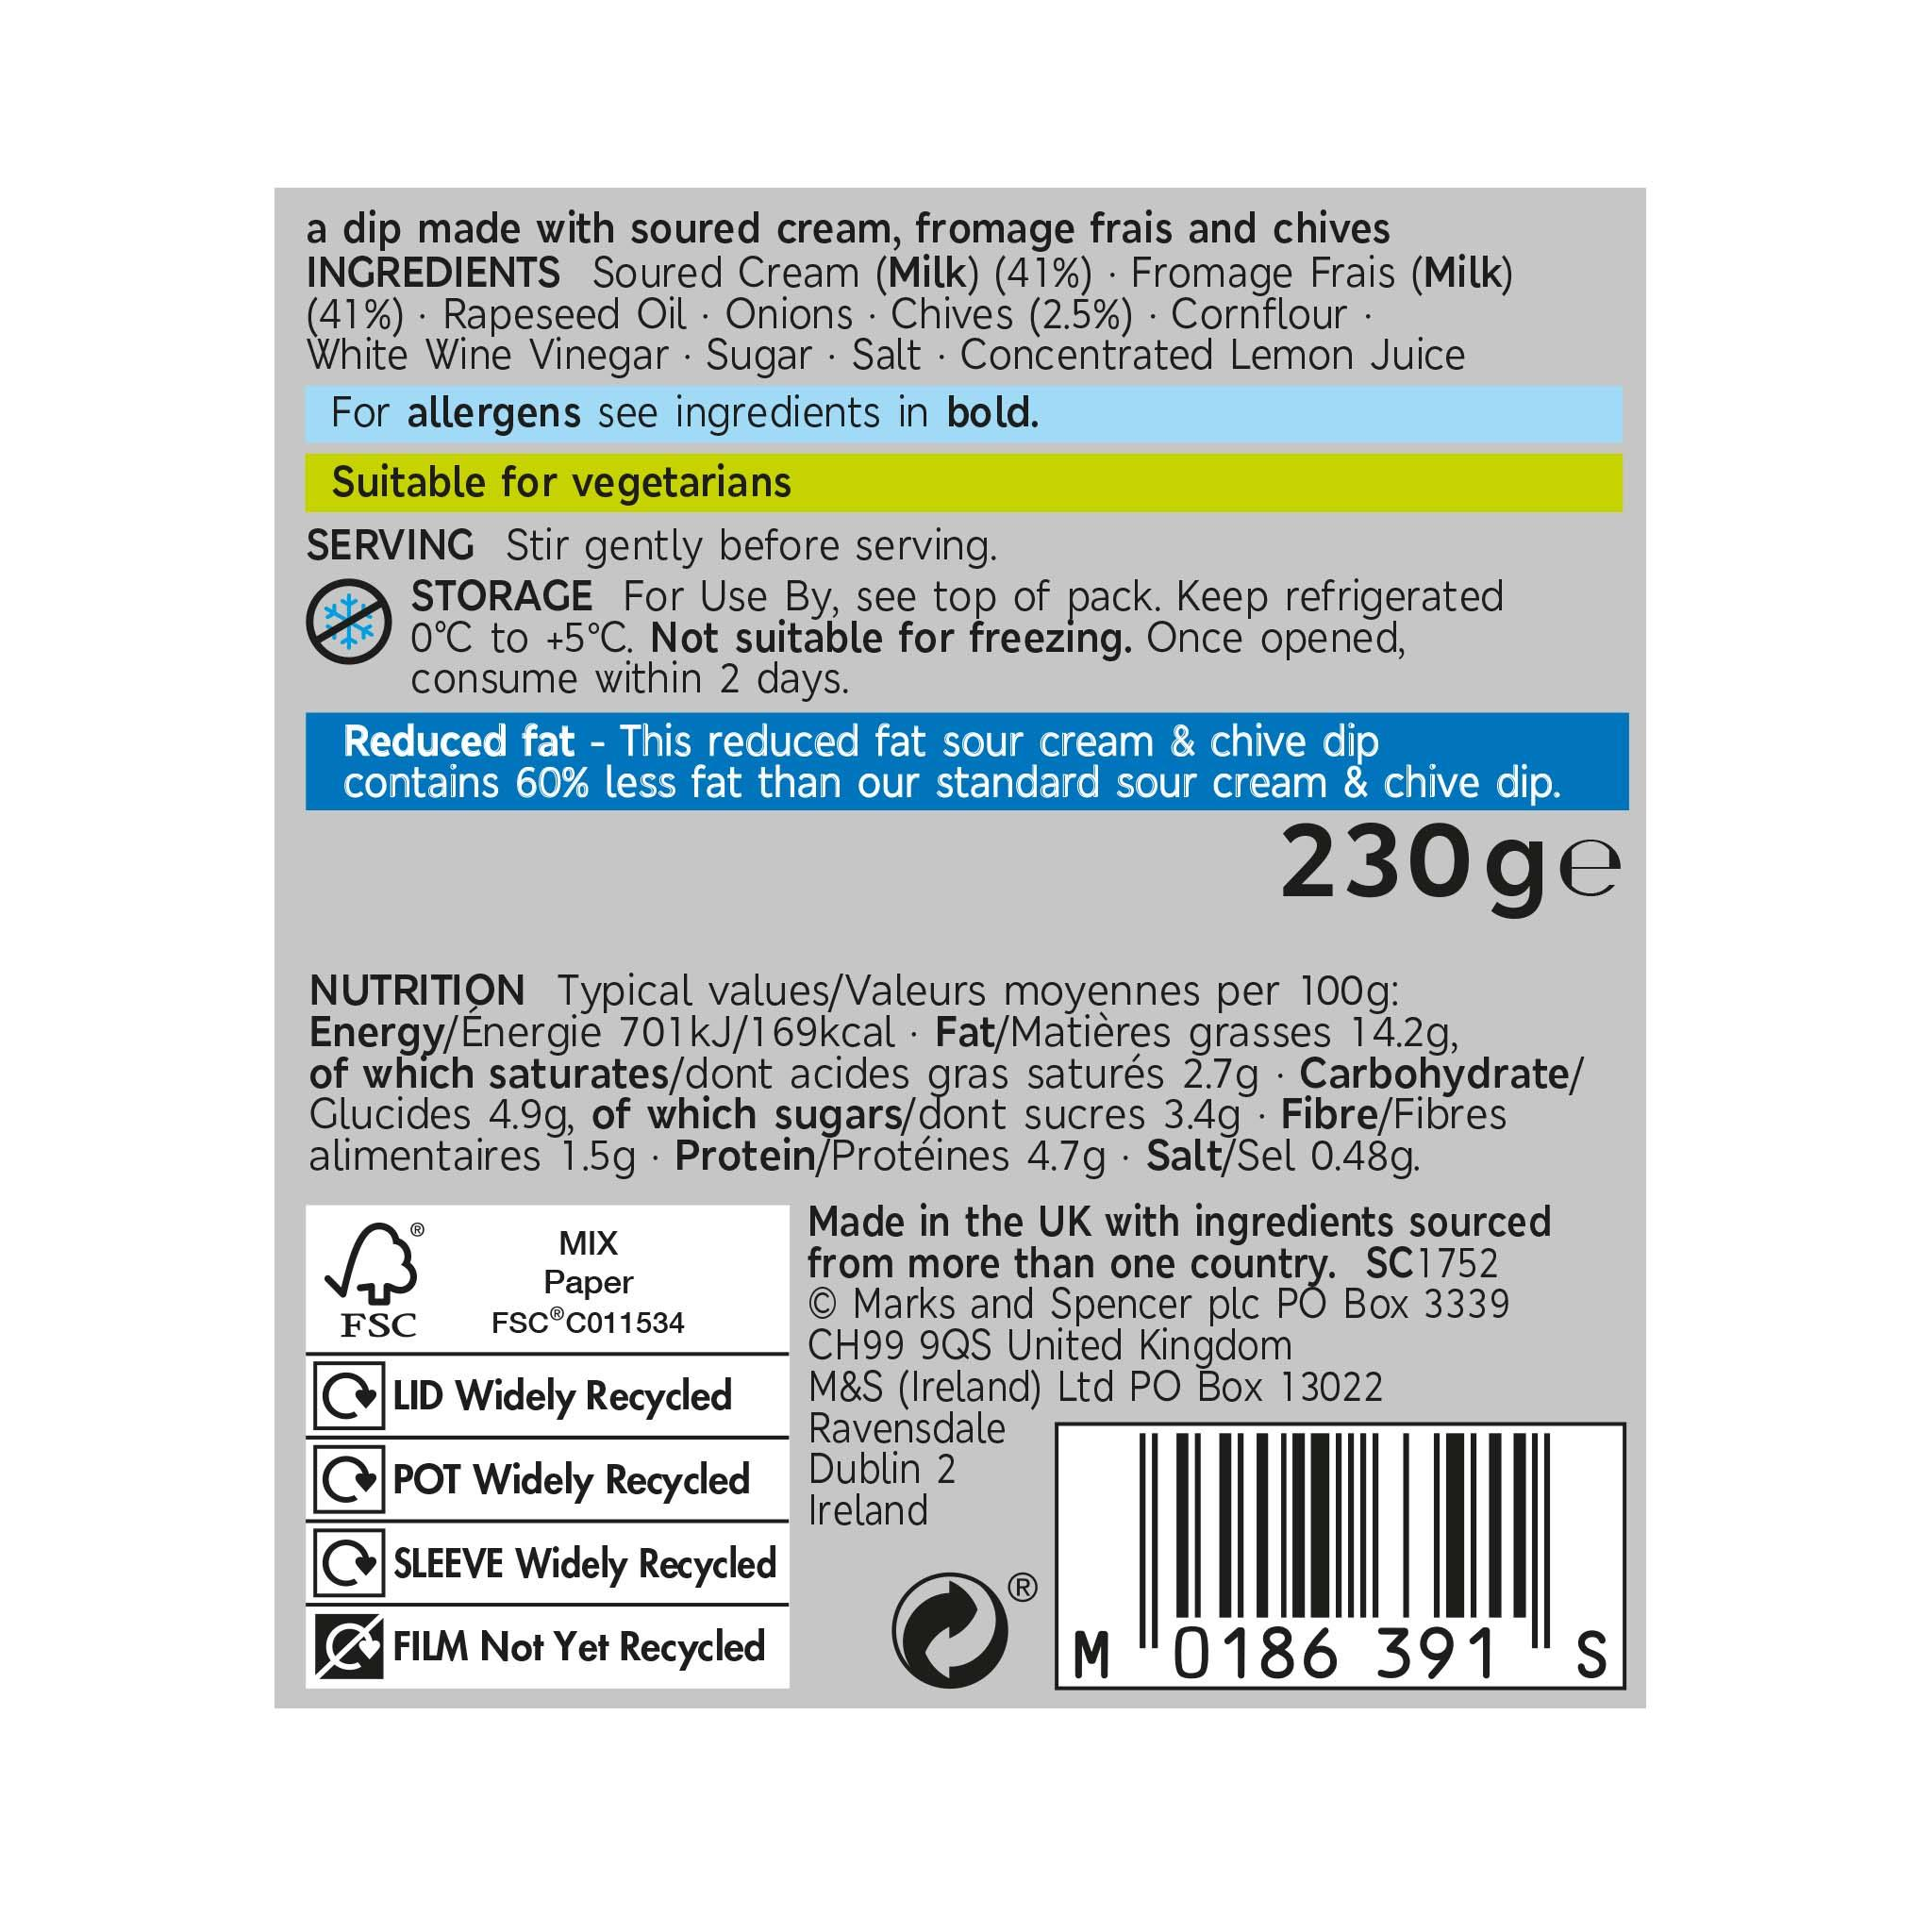 Reduced Fat Sour Cream & Chive Dip 230g Label